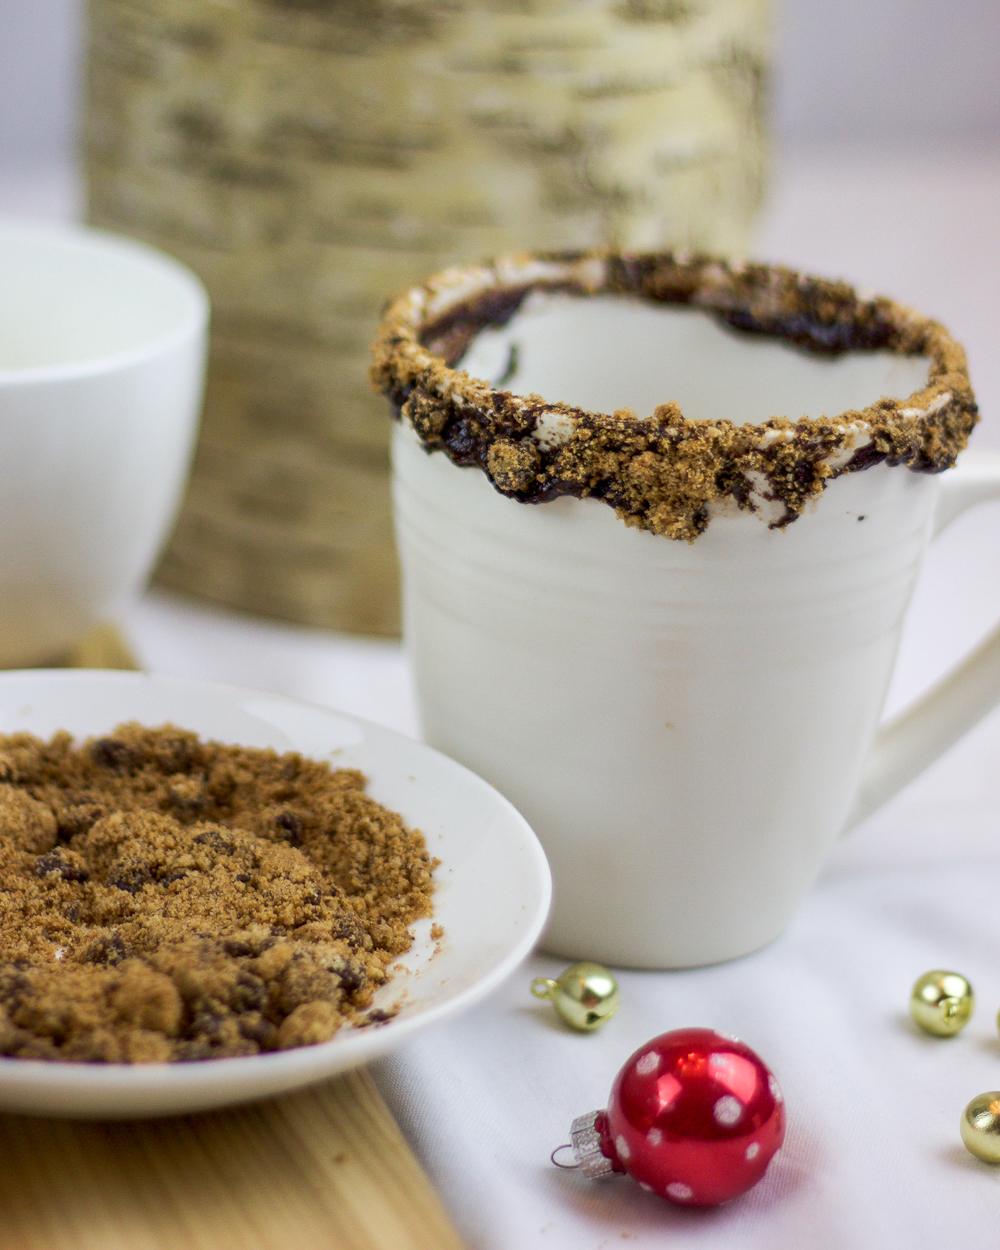 To elevate hot chocolate for the holidays, rim your mugs with chocolate and cookies